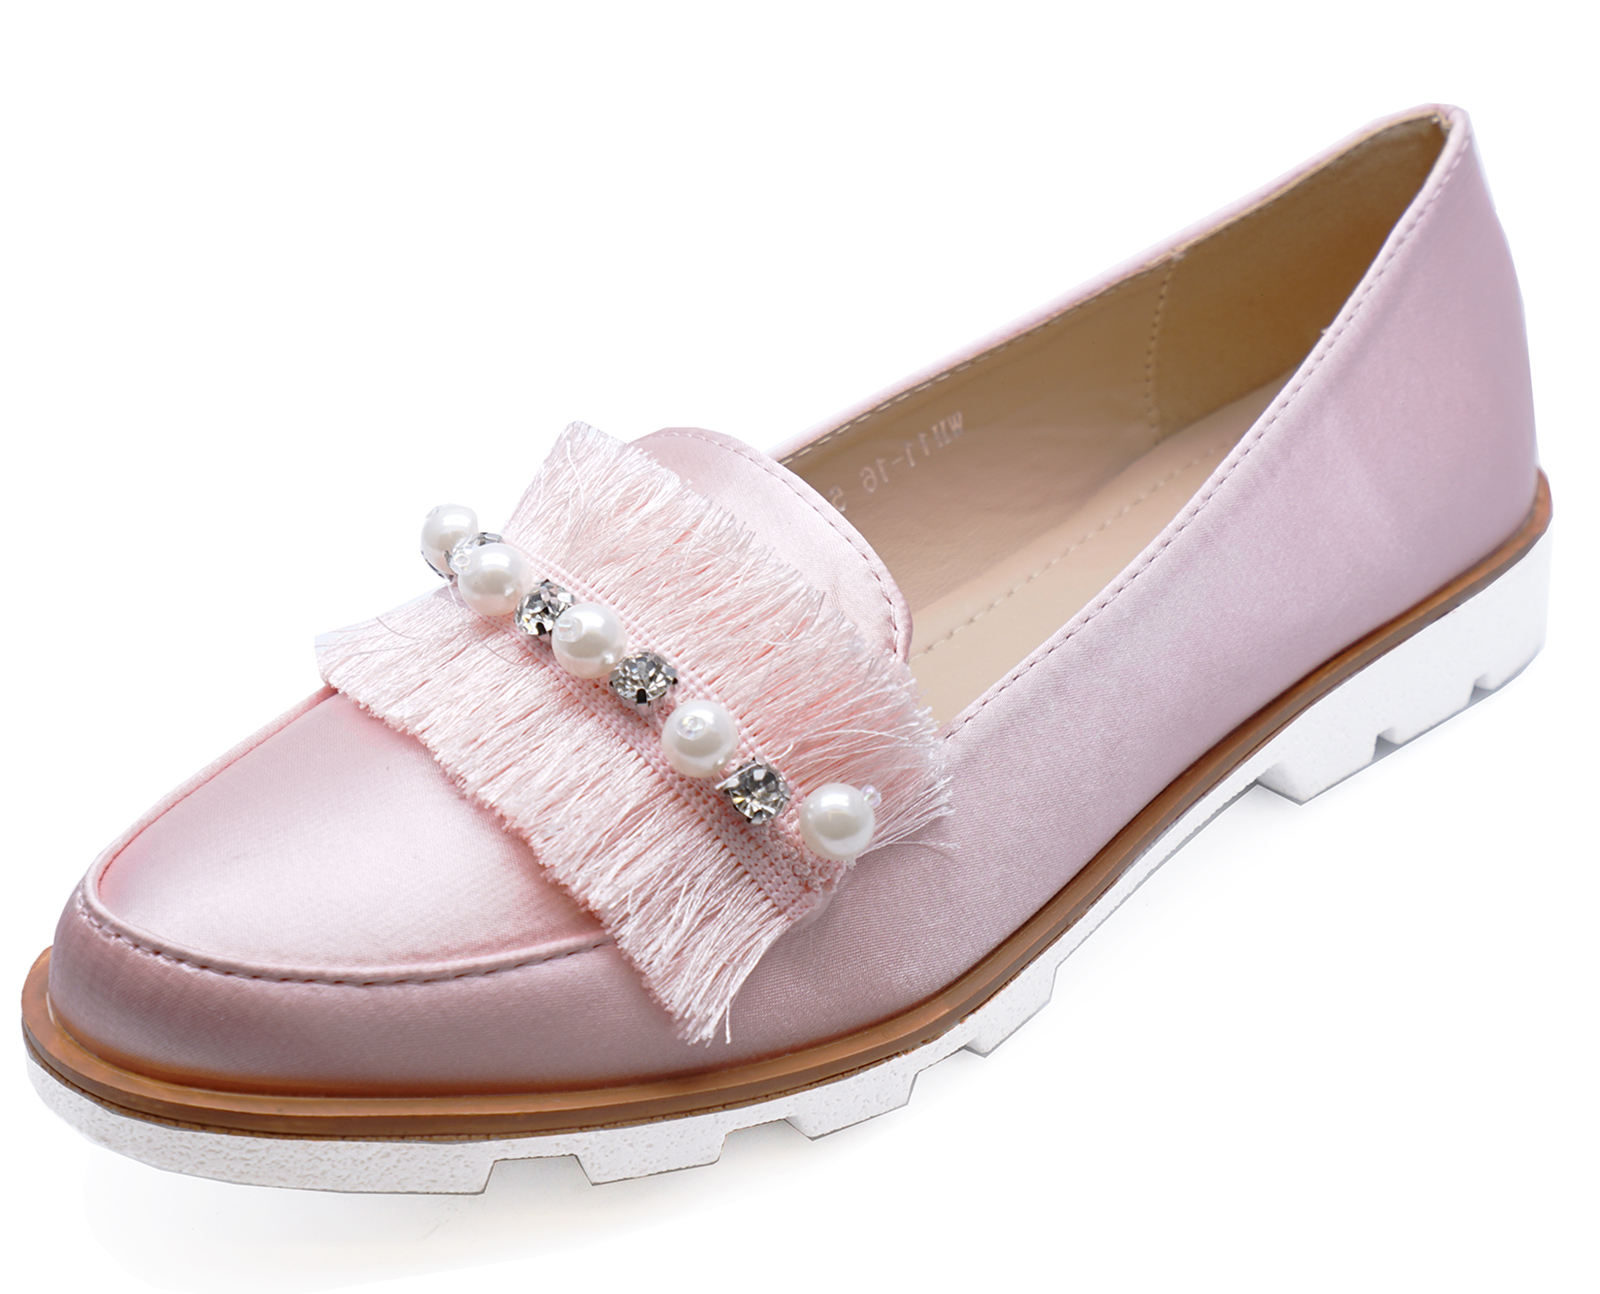 Ladies Pink Slip On Satin Loafers Smart Casual Flat Comfy Pumps